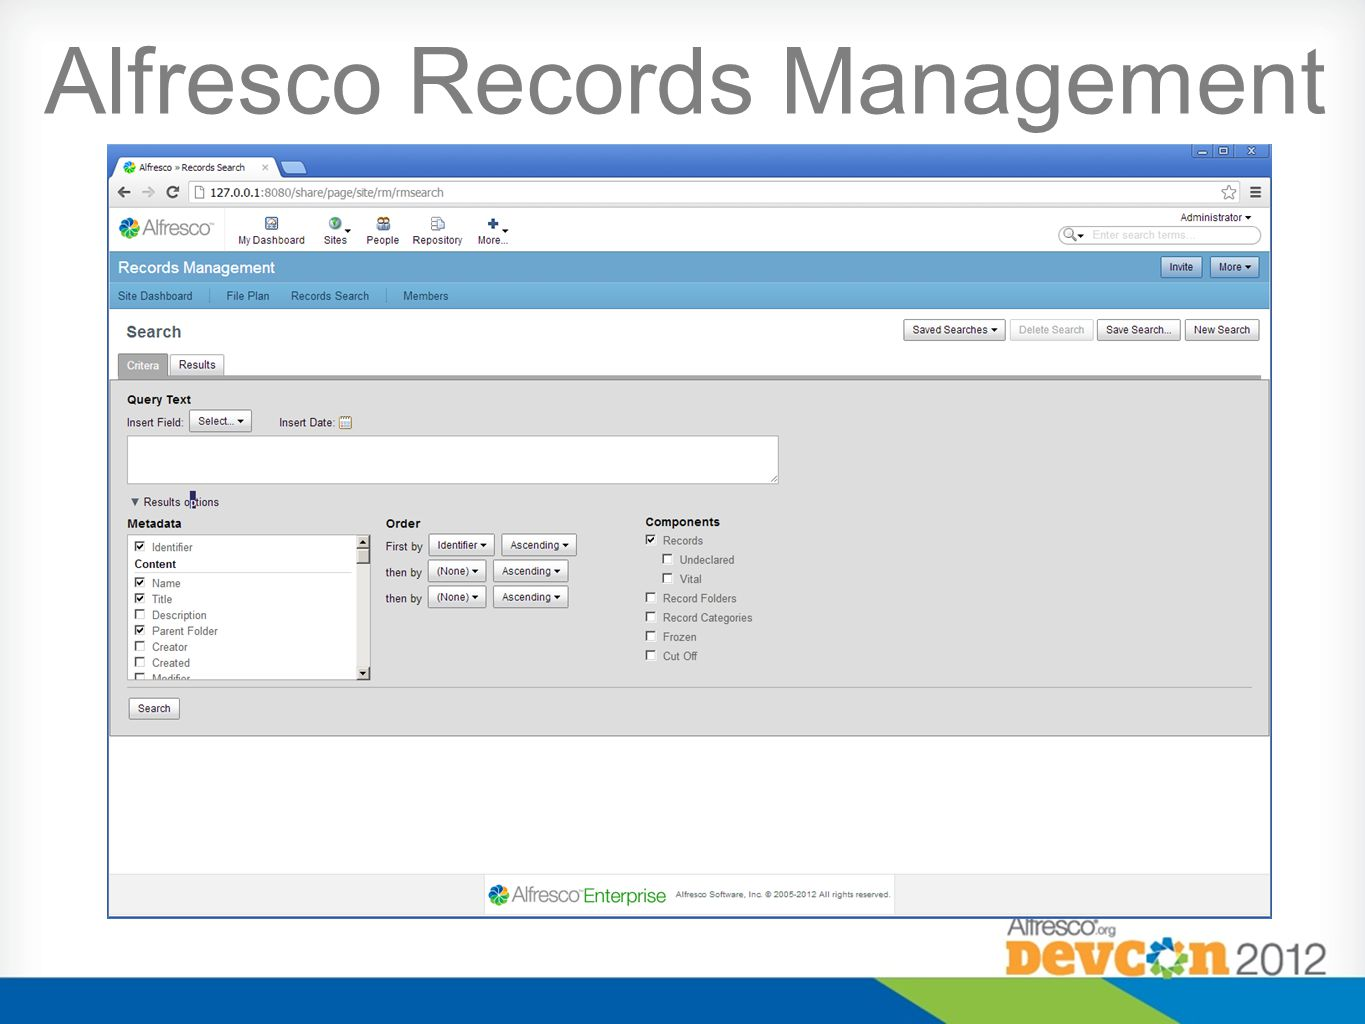 Alfresco Records Management